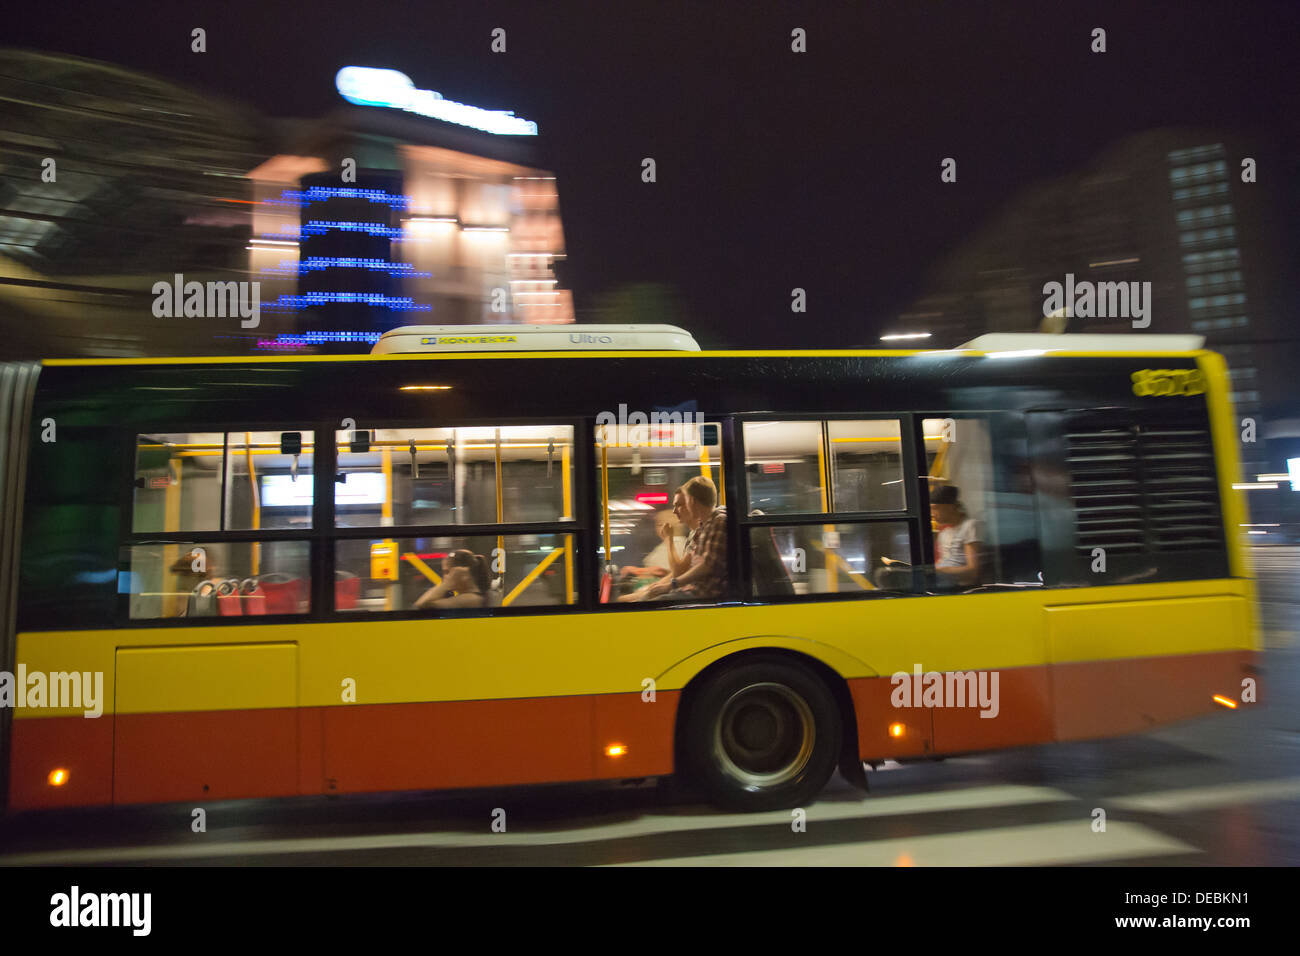 Warsaw, Poland, a bus drives past - Stock Image